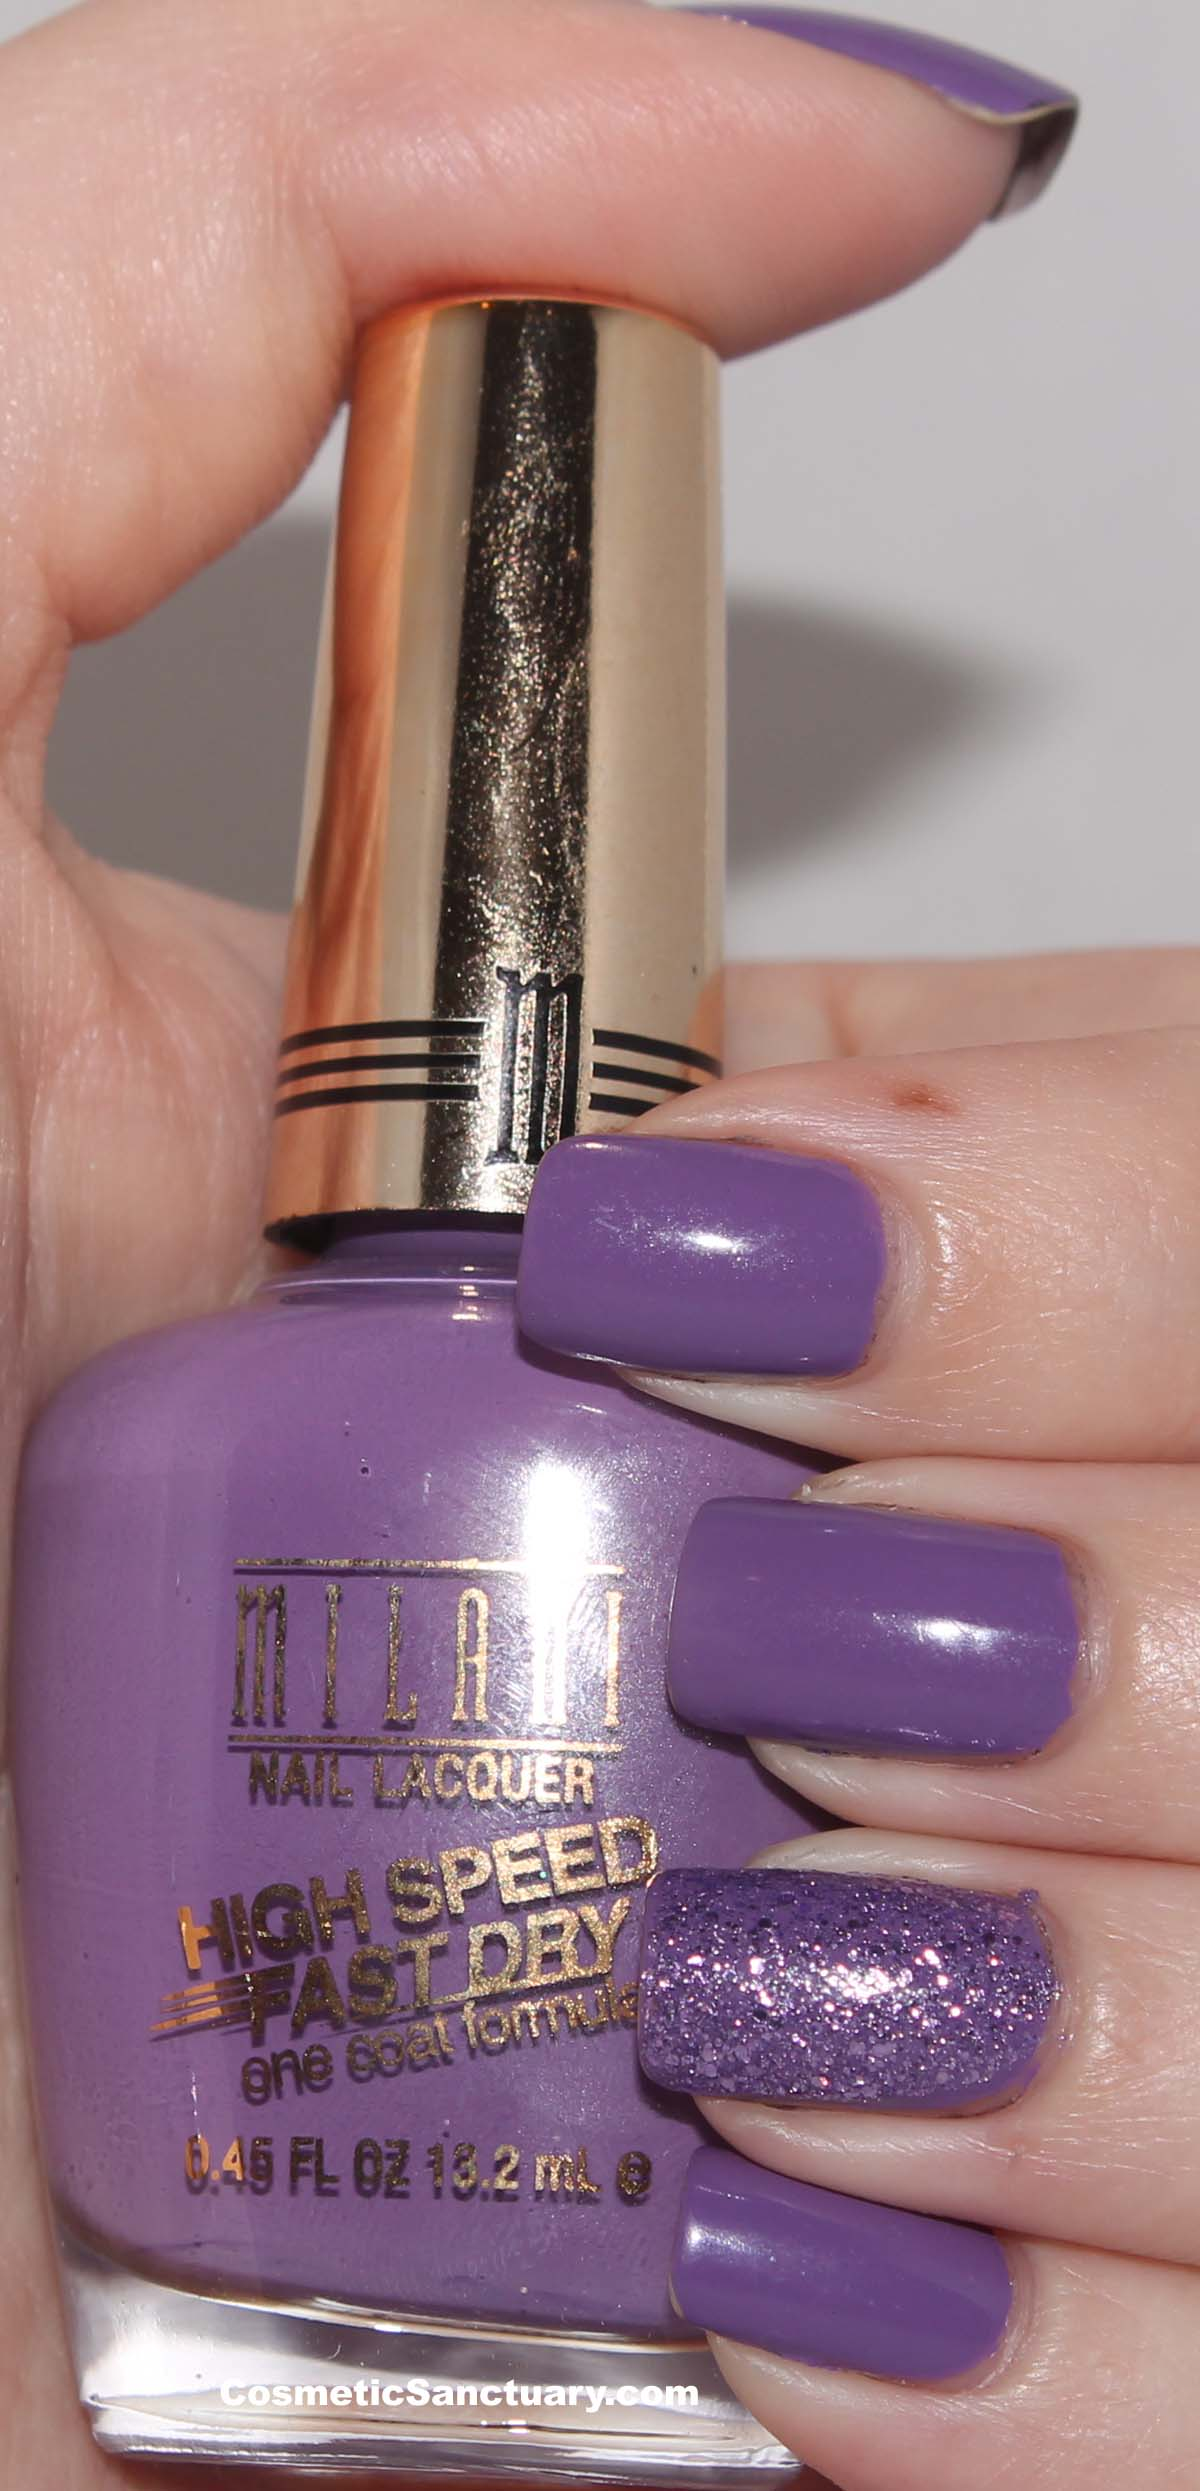 Milani High Speed Fast Dry Nail Lacquer Swatches and Reviews